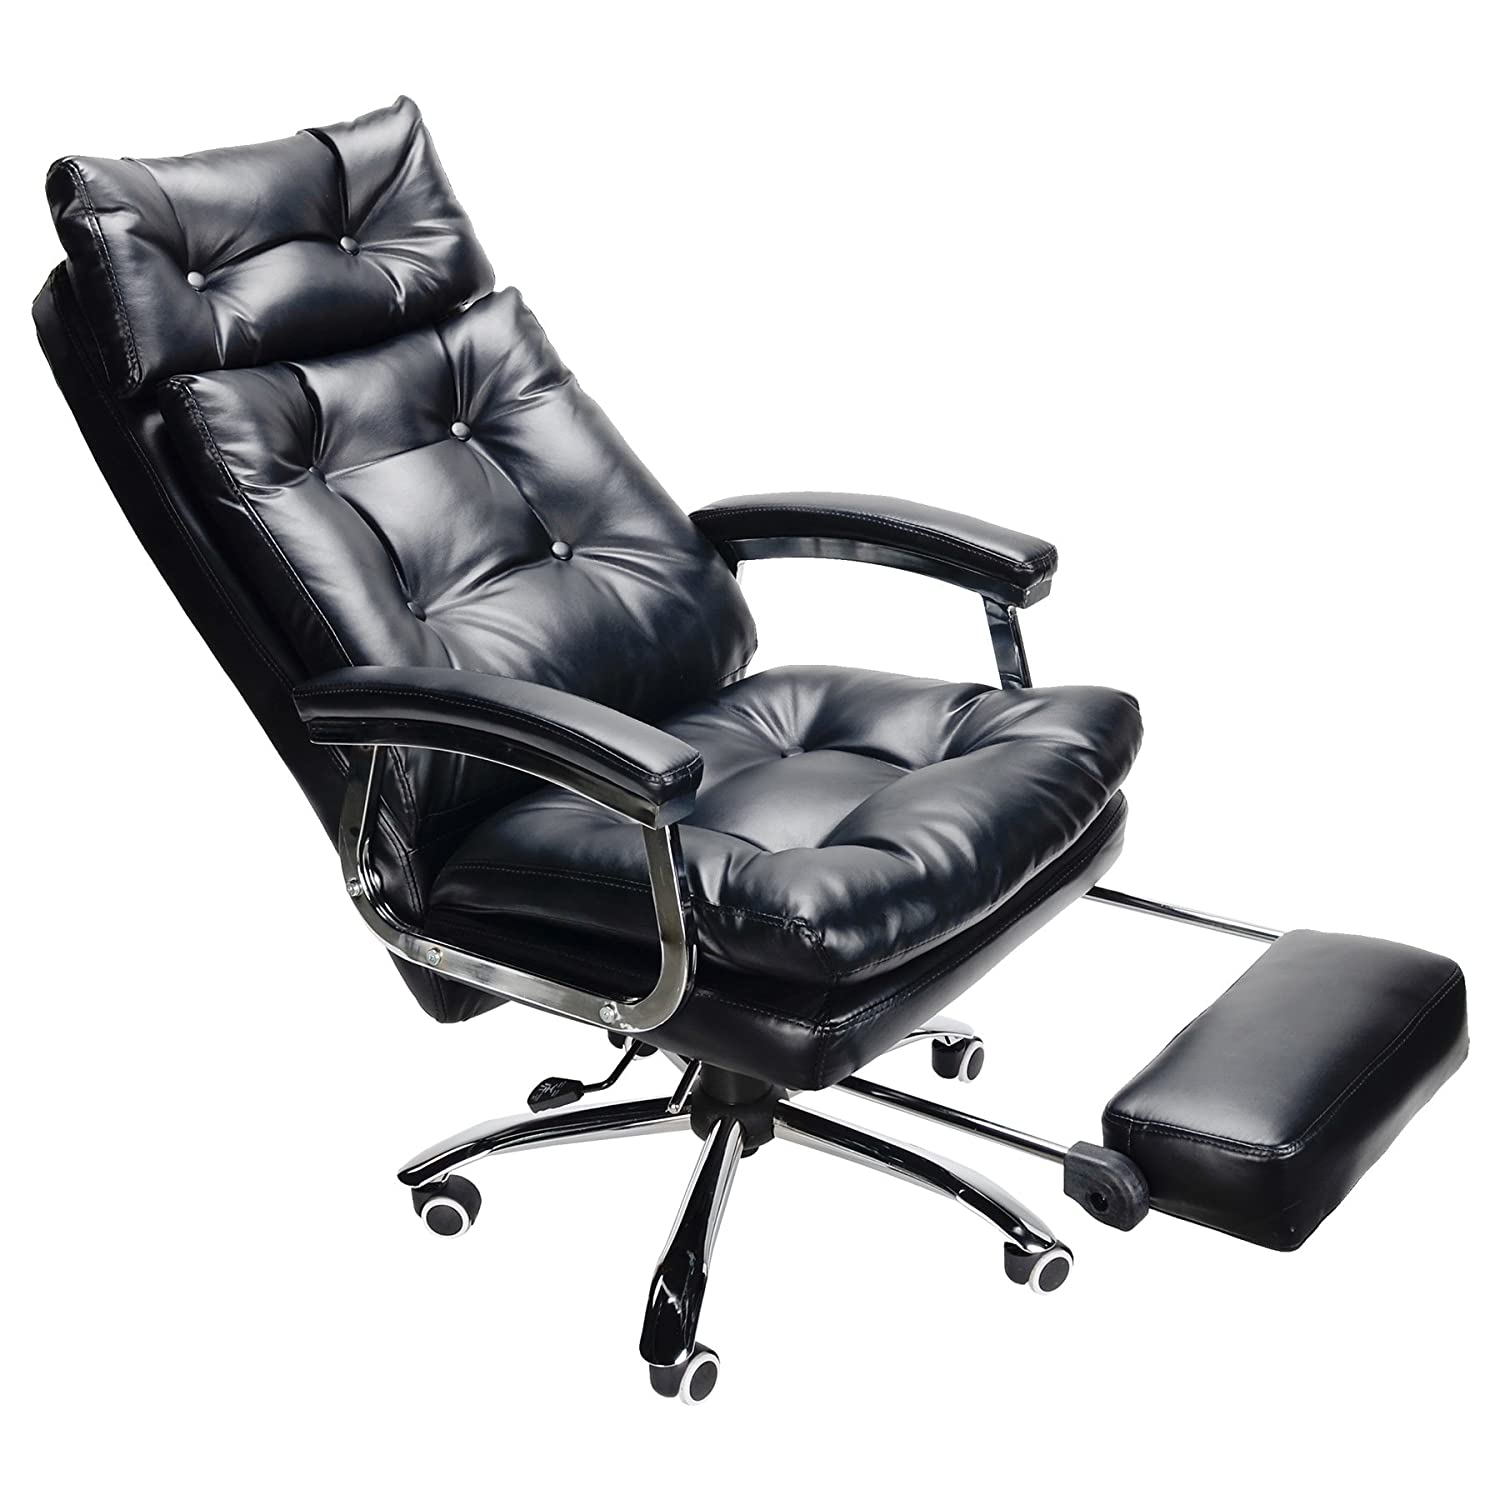 gm reclining ebay bk ergonomic office recliner armchair itm footrest chair high executive back leather